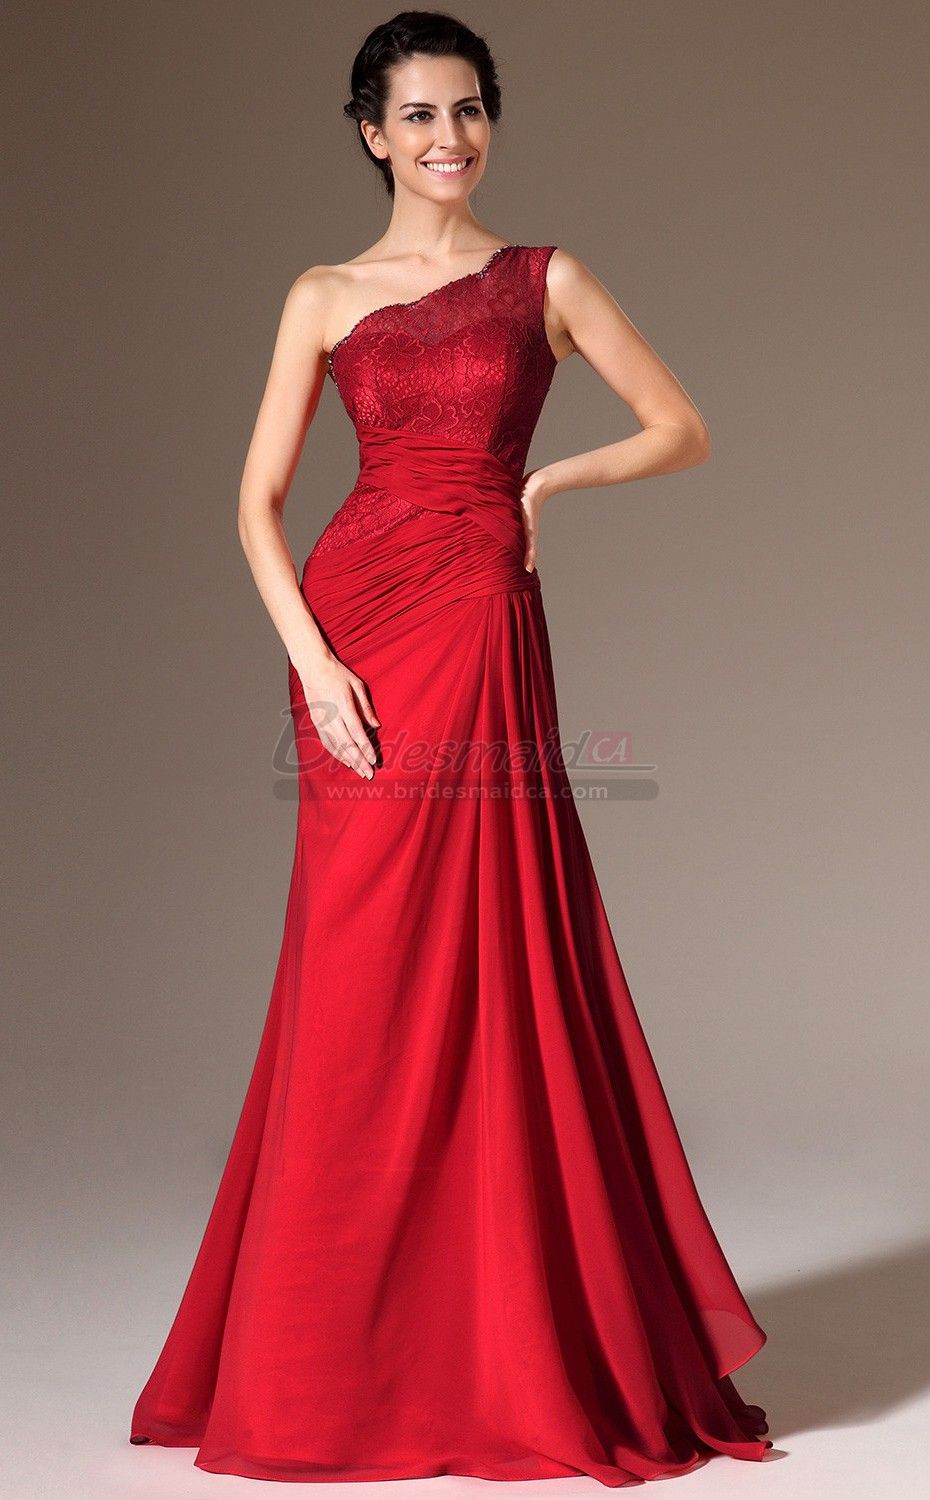 6dfb5b4ffc9 Red Long Chiffon and Lace One Shoulder Mermaid Bridesmaid Dress JT-CA1350